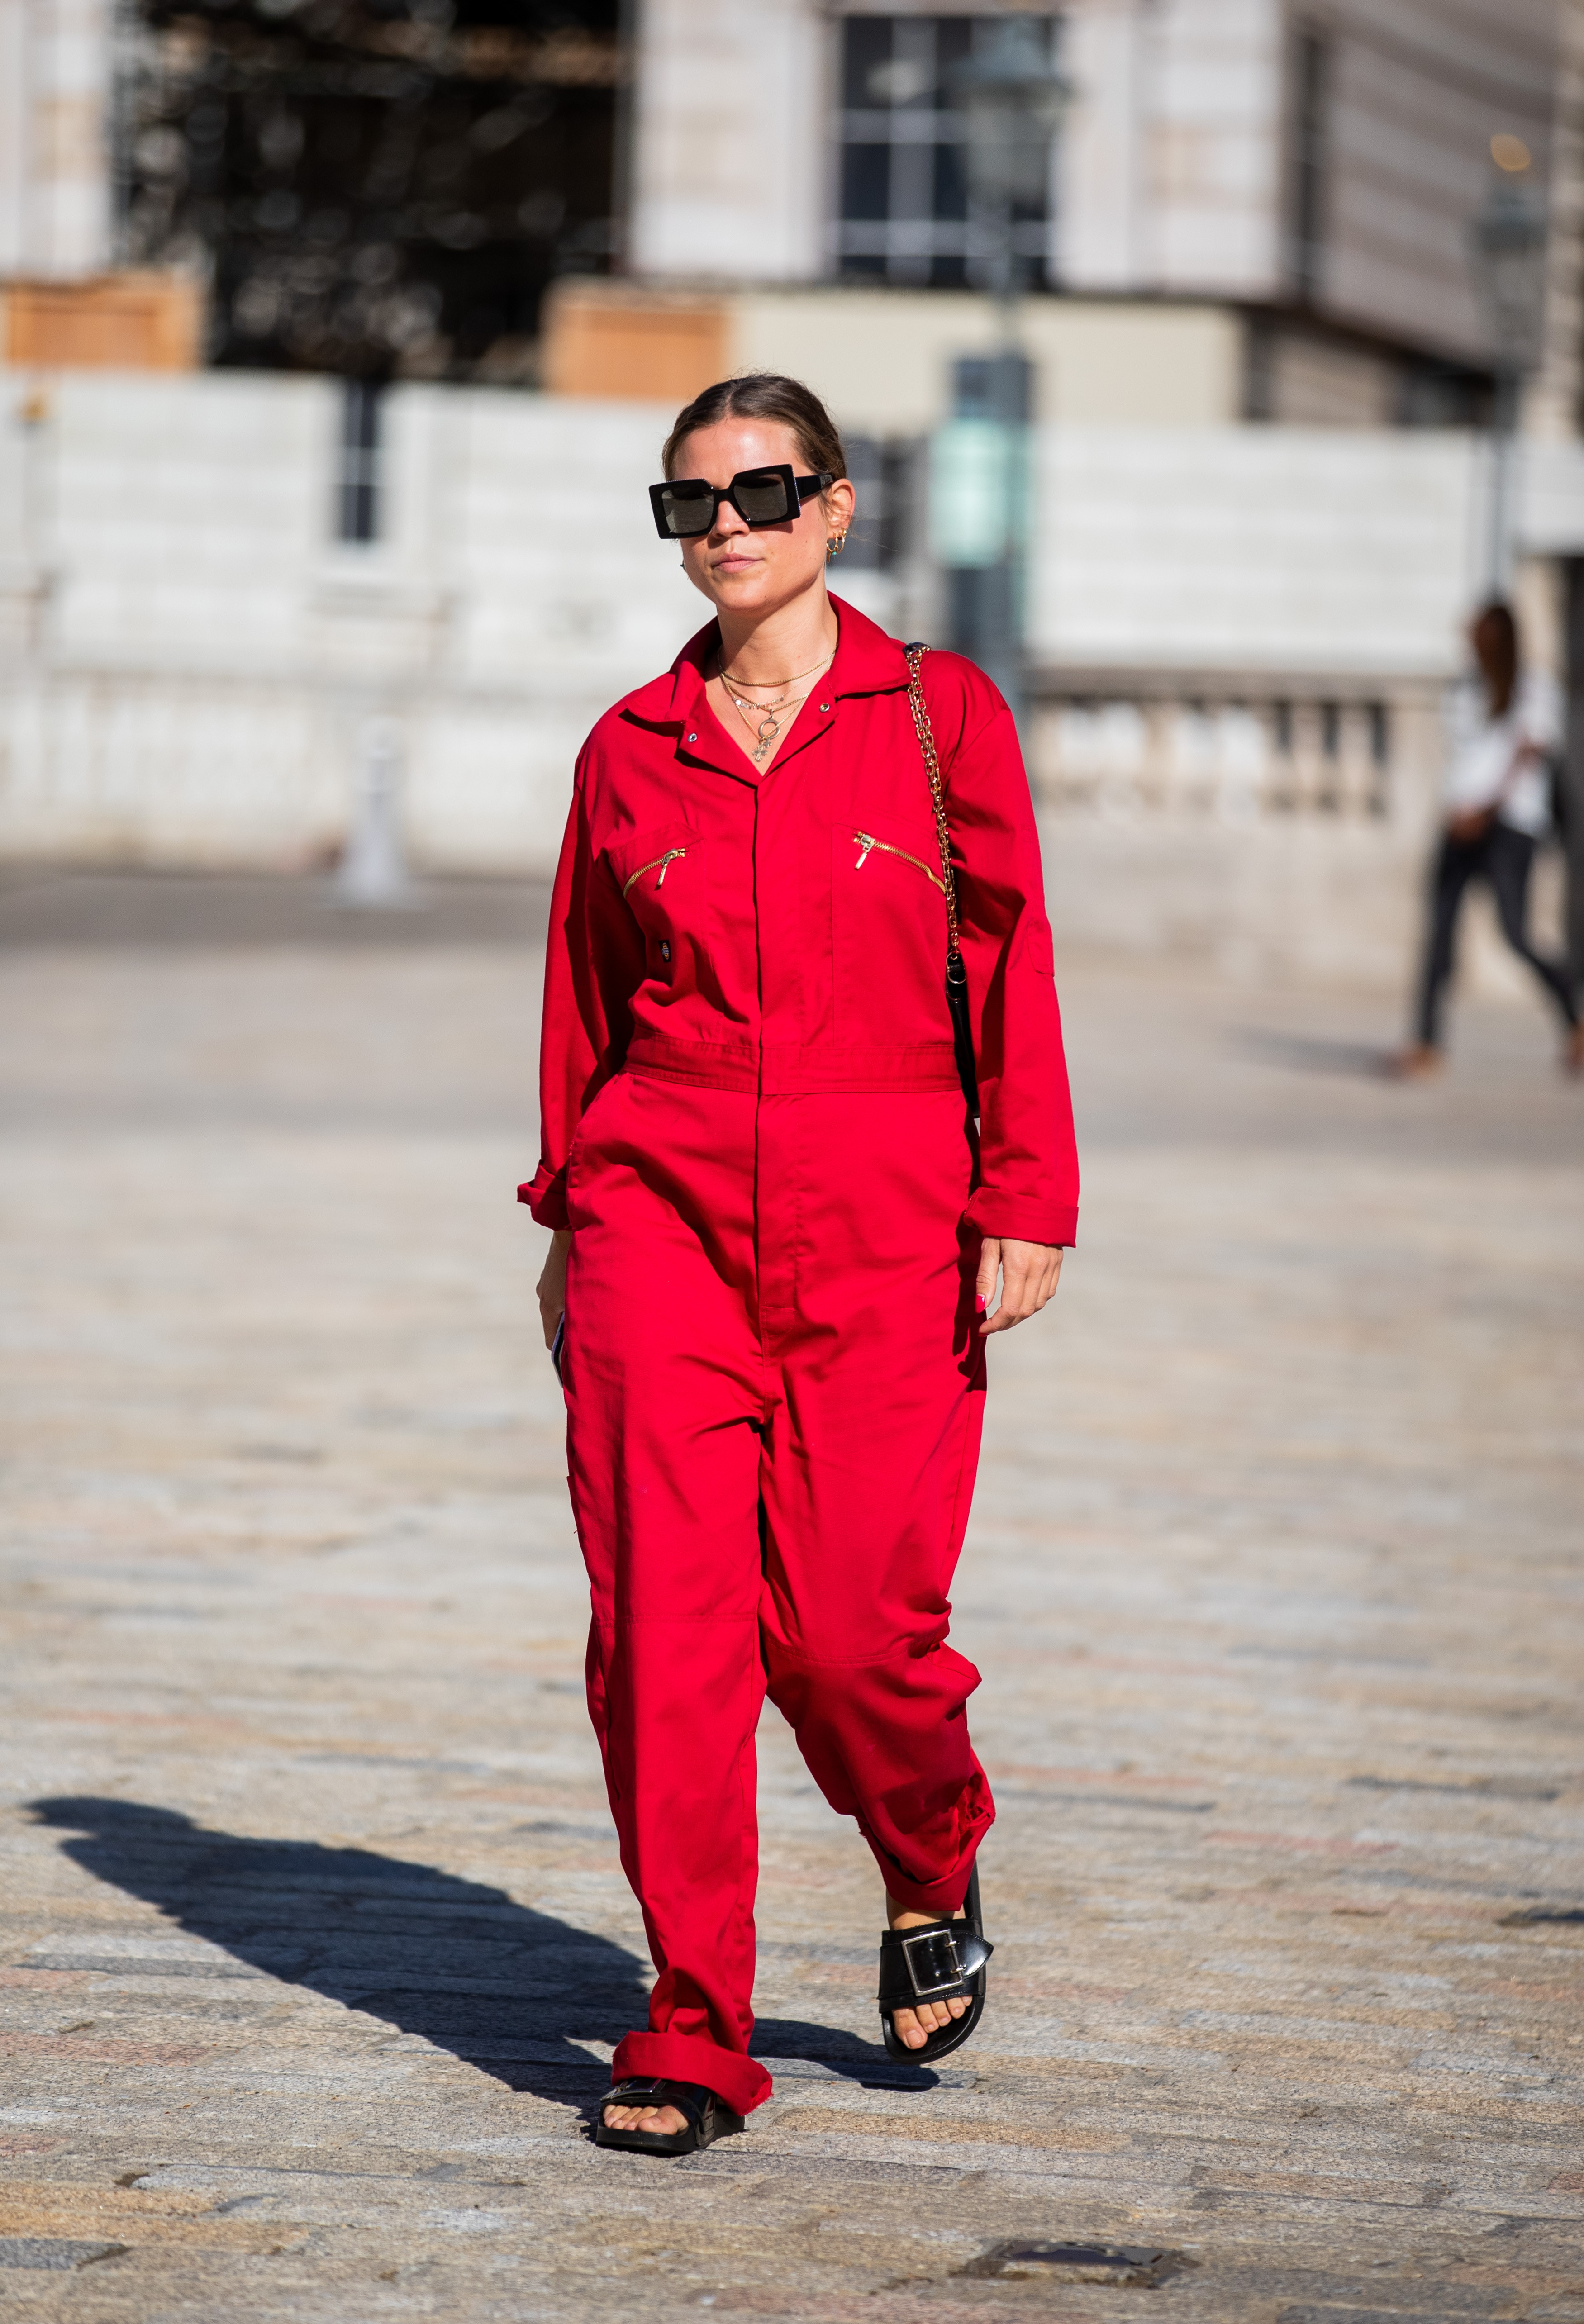 LONDON, ENGLAND - SEPTEMBER 14: A guest is seen wearing red overall outside Fyodor Golan during London Fashion Week September 2019 on September 14, 2019 in London, England. (Photo by Christian Vierig/Getty Images) (Foto: Getty Images)